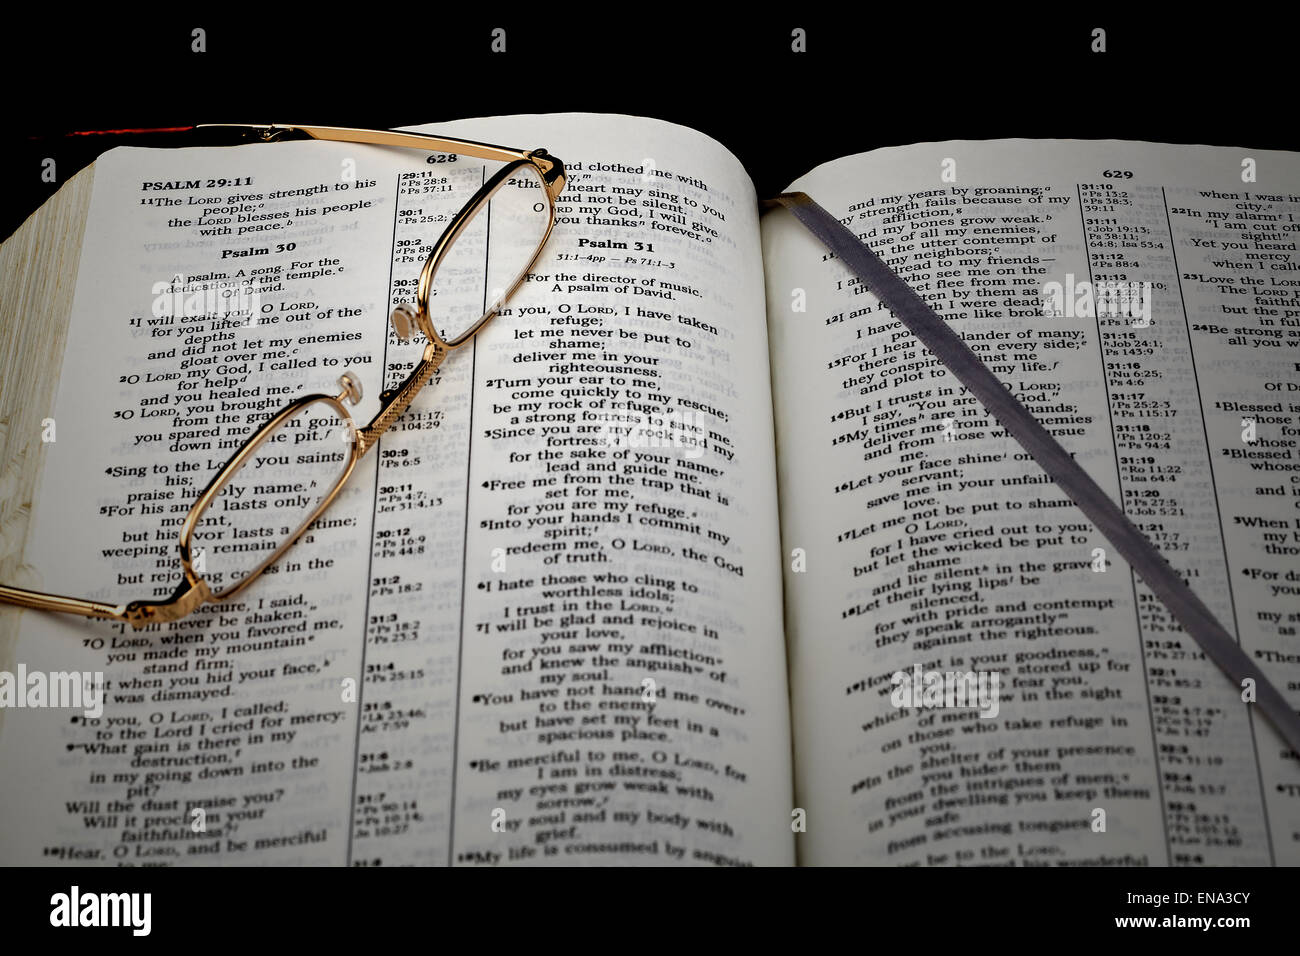 Bible Study Psalm 30 In Evening Light With Reading Glasses On Black Stock Photo Alamy